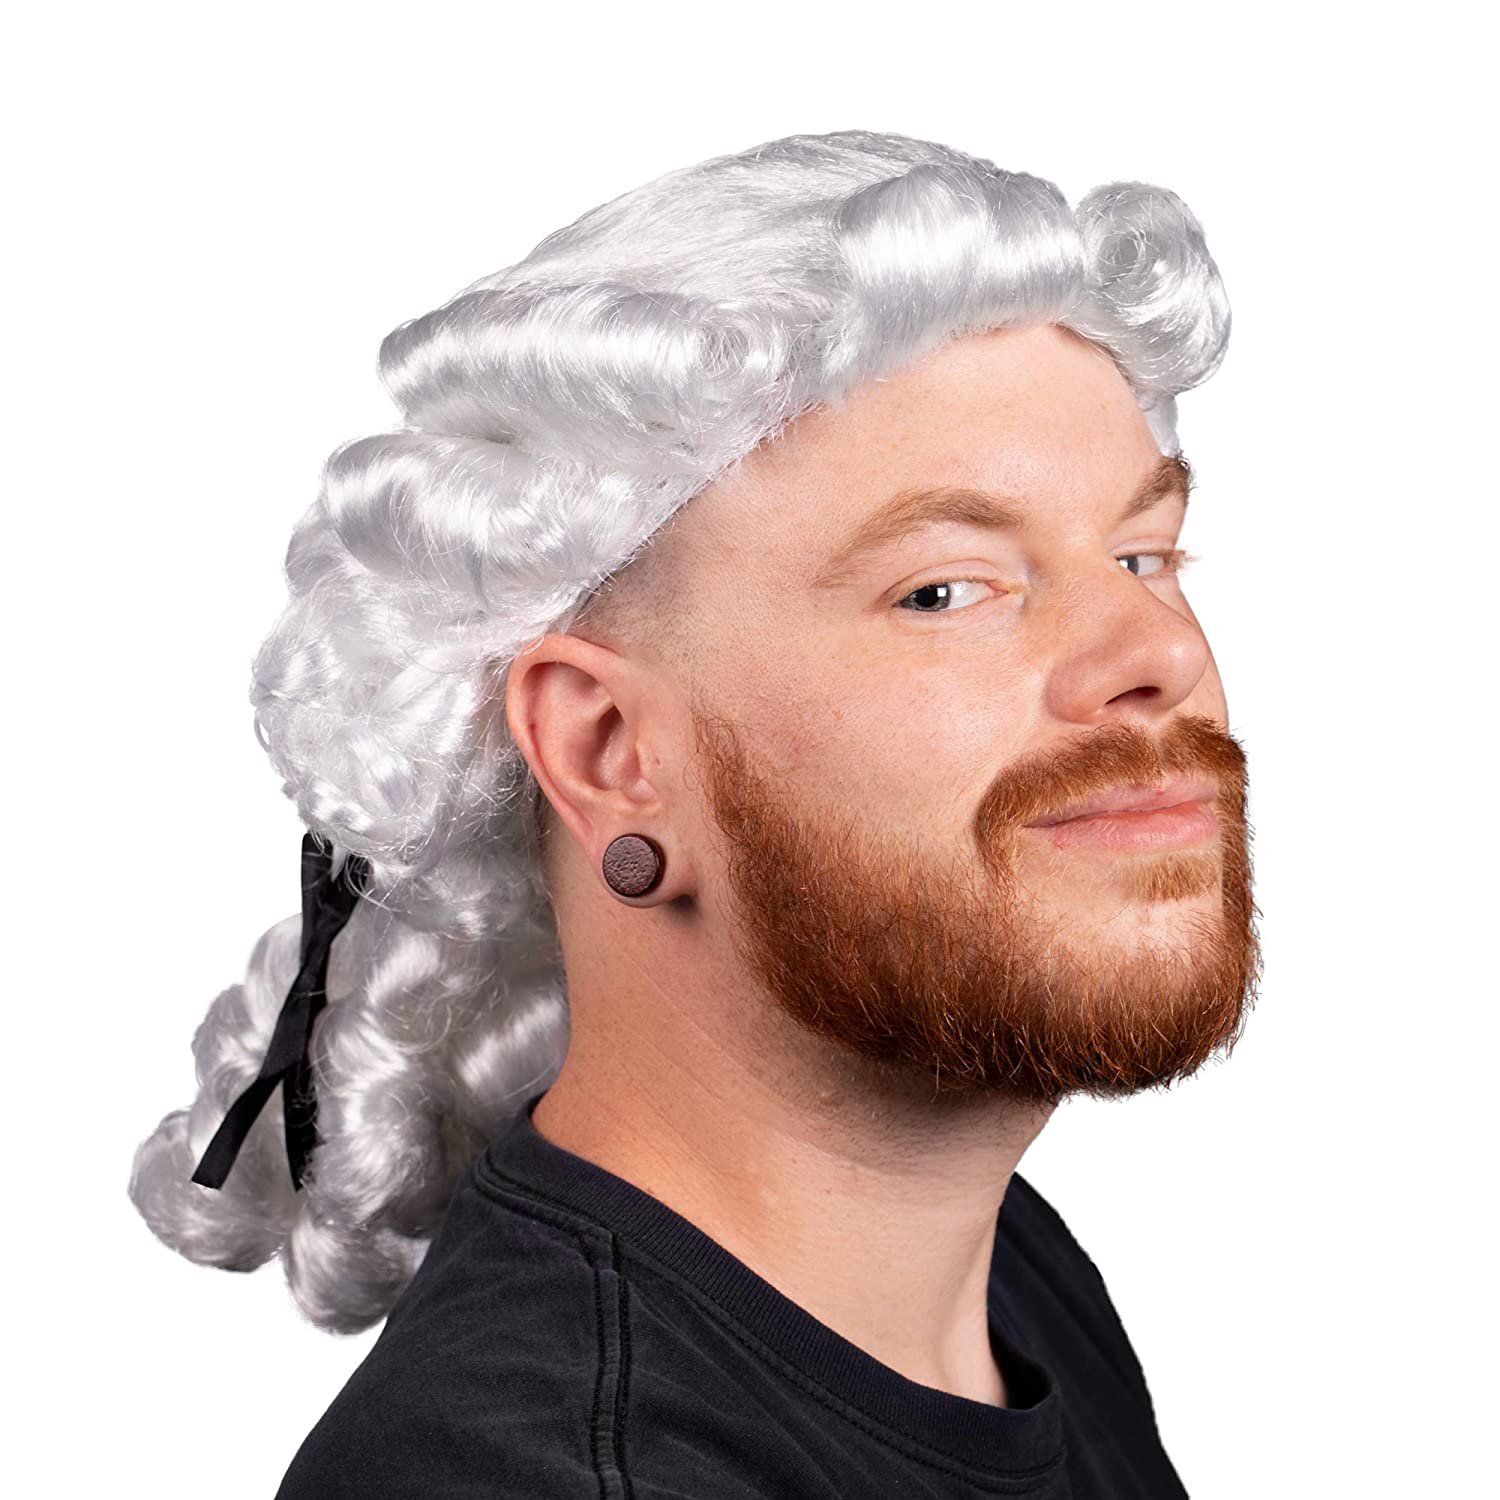 240a5a467ac5bc Amazon.com: Boo Inc. Colonial Powdered Wig   Adult Halloween Costume  Accessory: Clothing